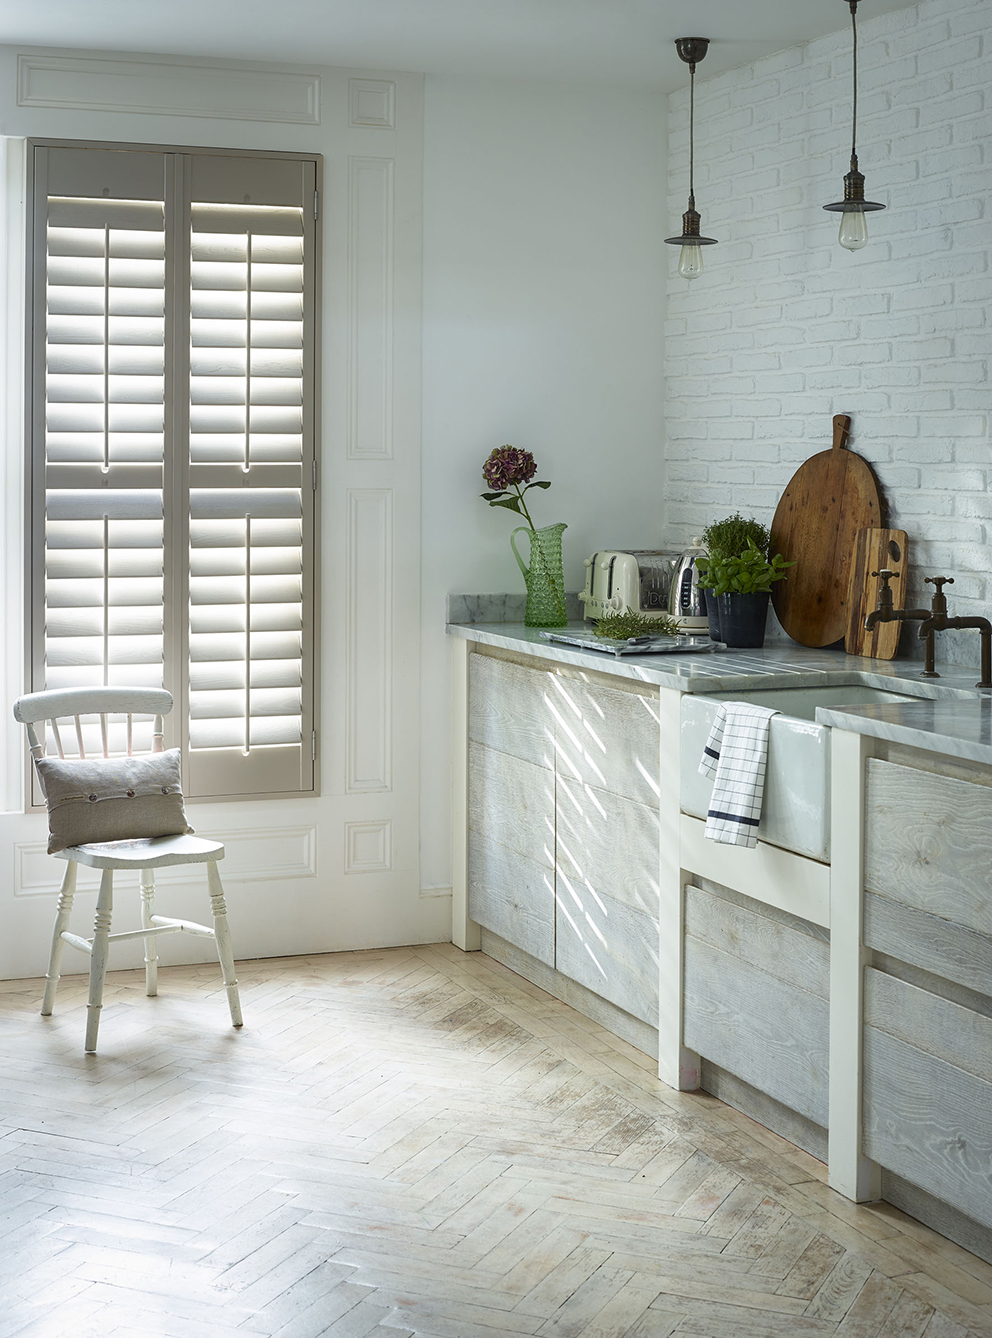 Shutterly Fabulous - French For Pineapple Blog - Neutral Plantation Shutters in beautiful neutral kitchen with oak cabinets, parquet flooring and marble worktop